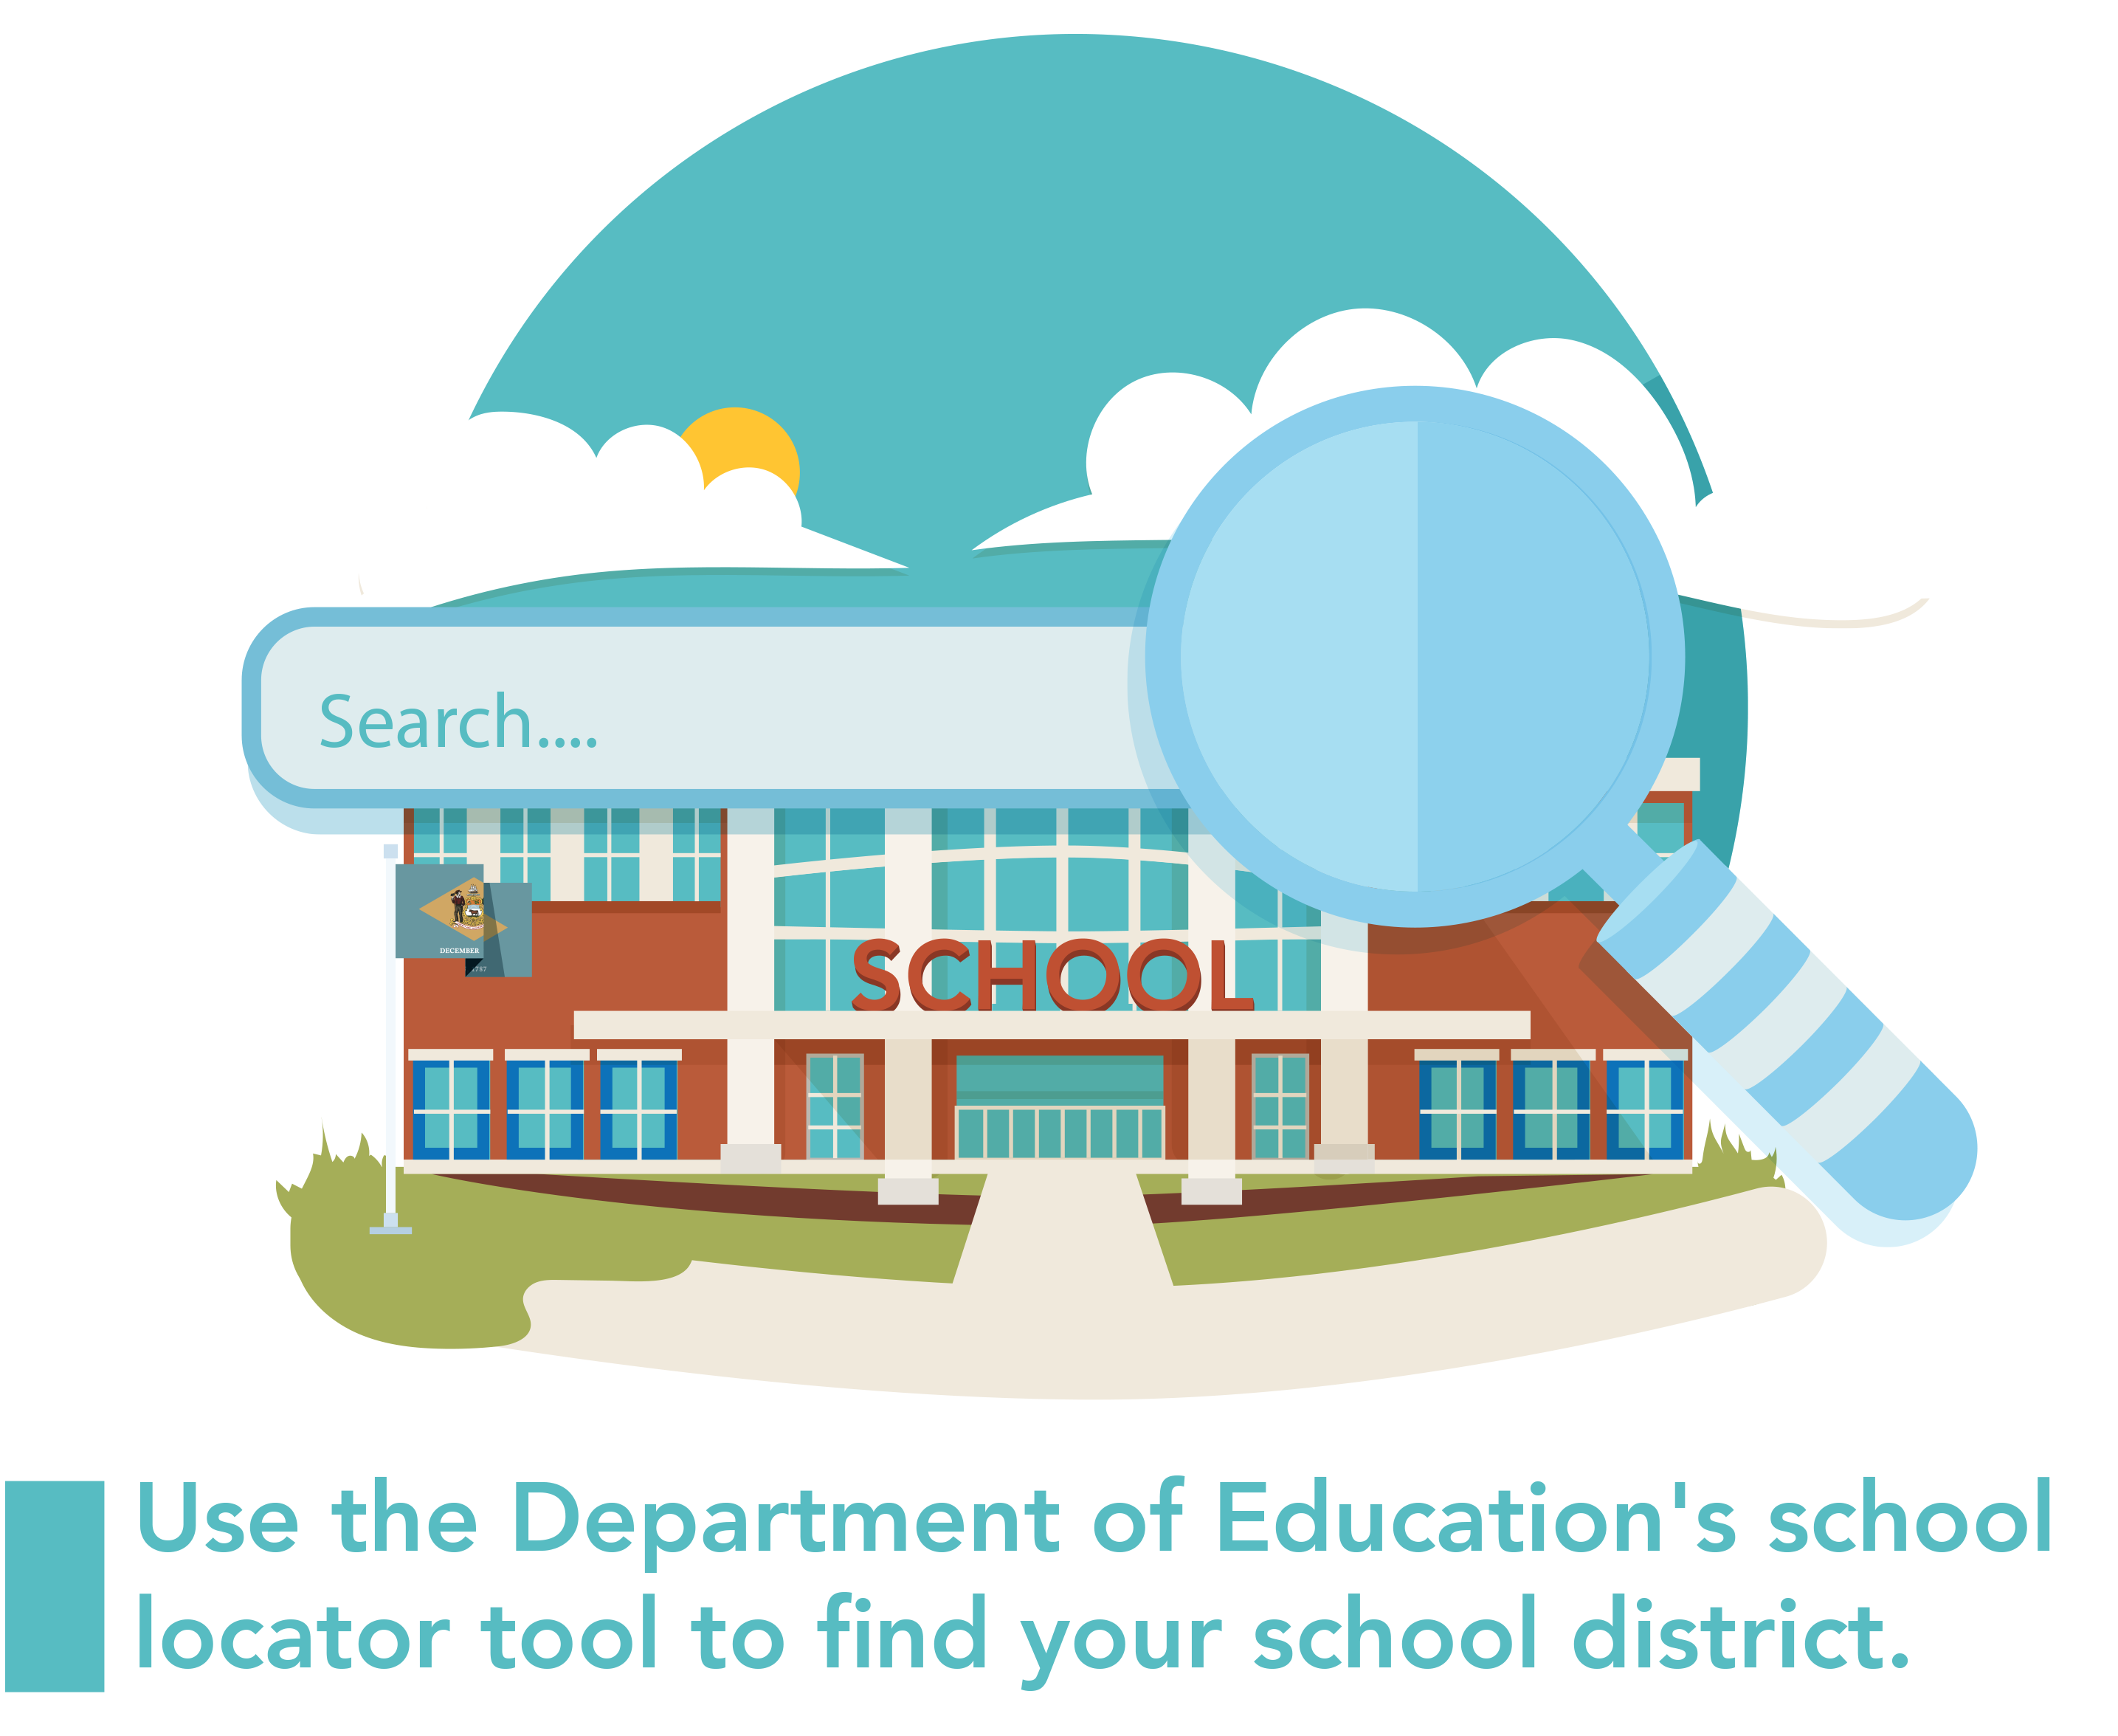 A grpahic with a school and a search icon representing the Department of Education's school locator tool.